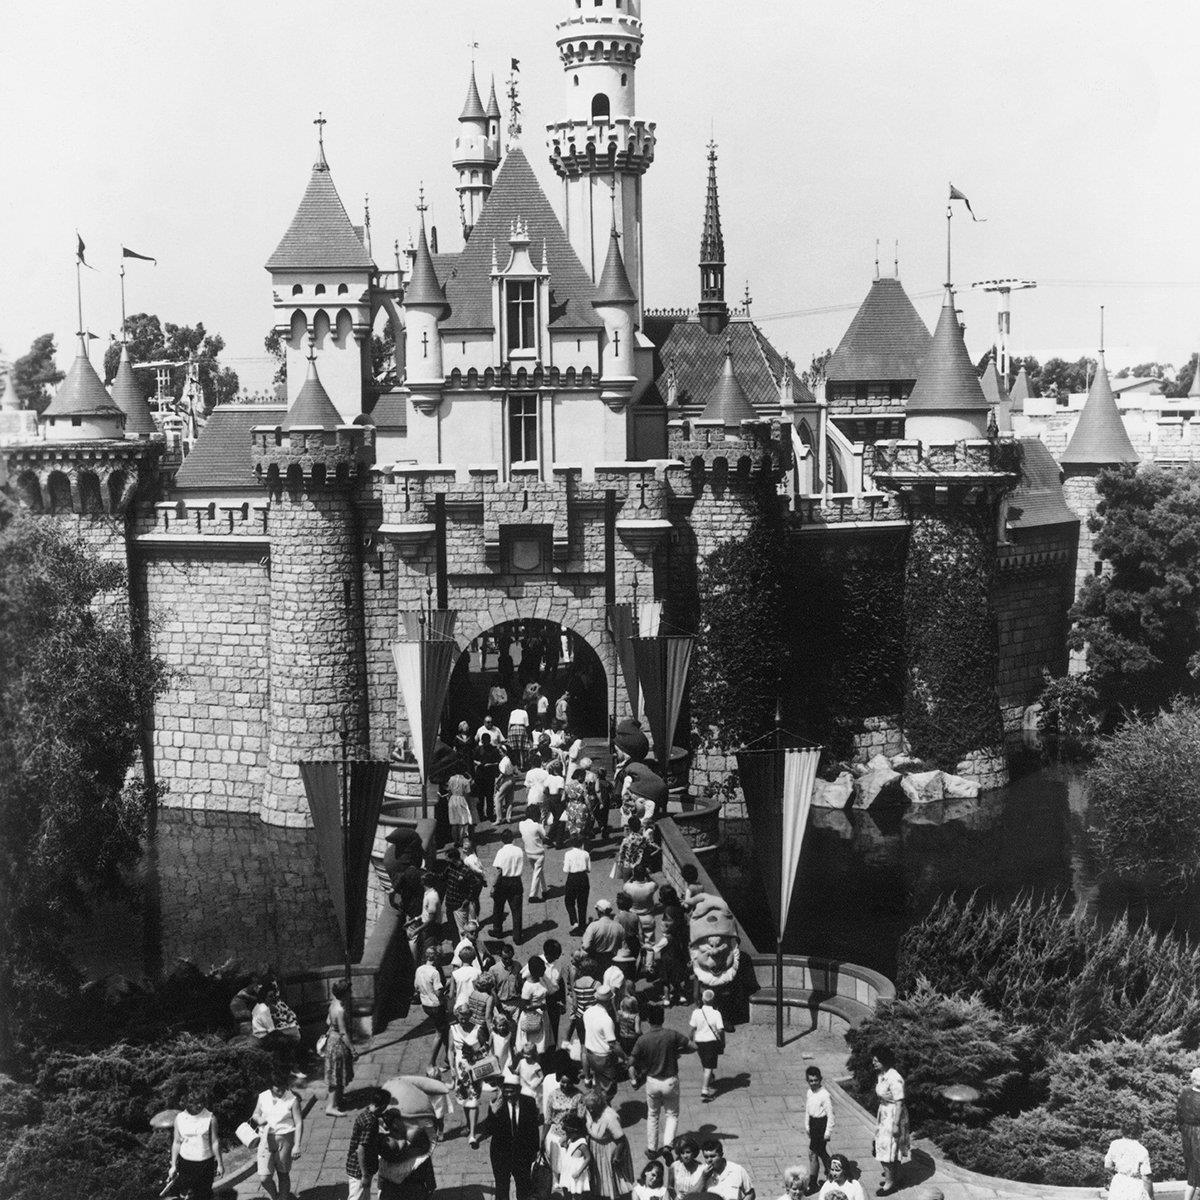 Slide 1 of 19: Disneyland opened its doors to the public on July 17, 1955. Ever since, Sleeping Beauty's Castle has welcomed kids (and kids at heart) into Fantasyland. A lot has changed since then, but some things at Disney will never change.